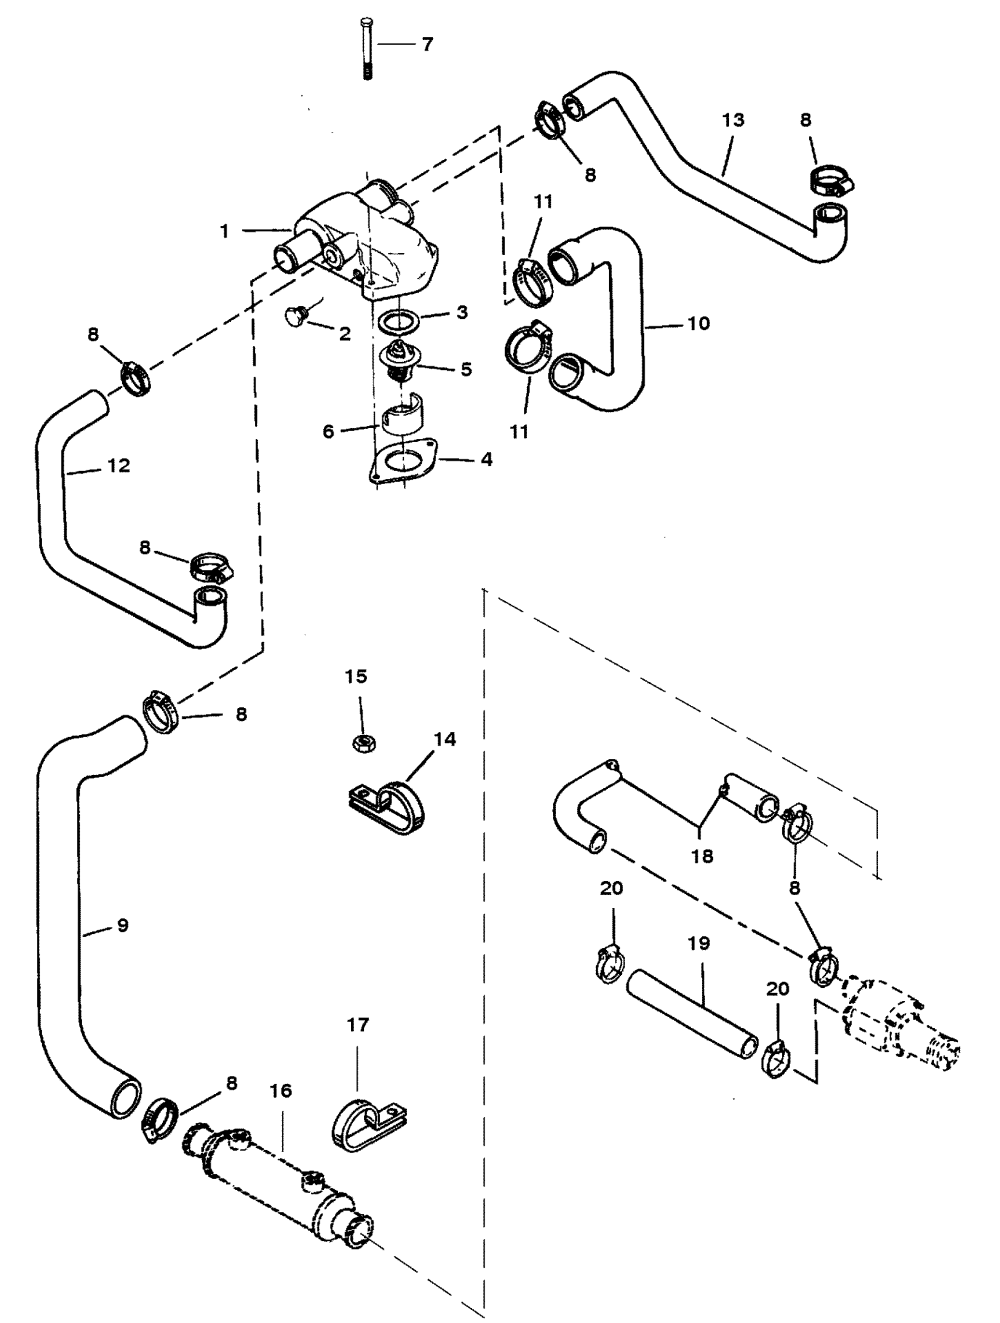 medium resolution of standard cooling system bravo engines for mercruiser 5 7l lx tbi 7 4 mercruiser cooling system diagram